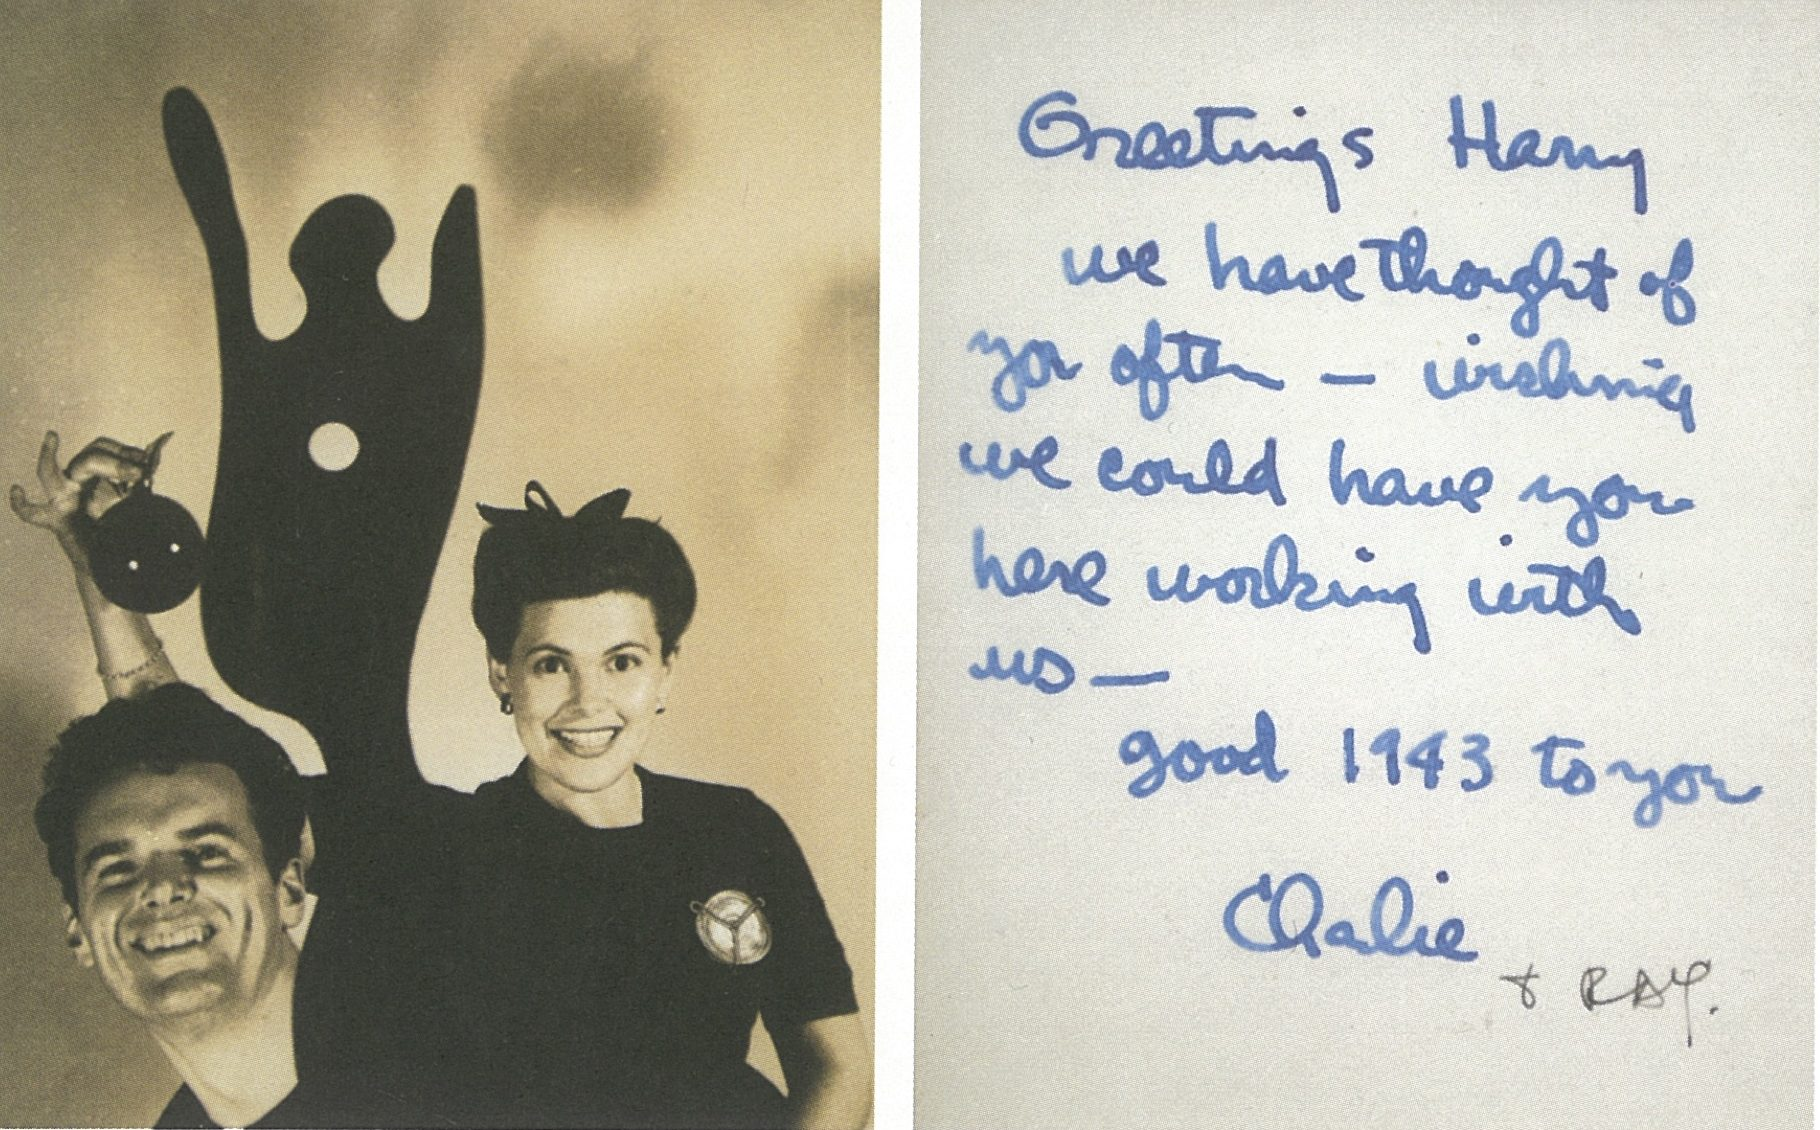 Christmas card from Charles and Ray Eames to Harry Weese, 1942